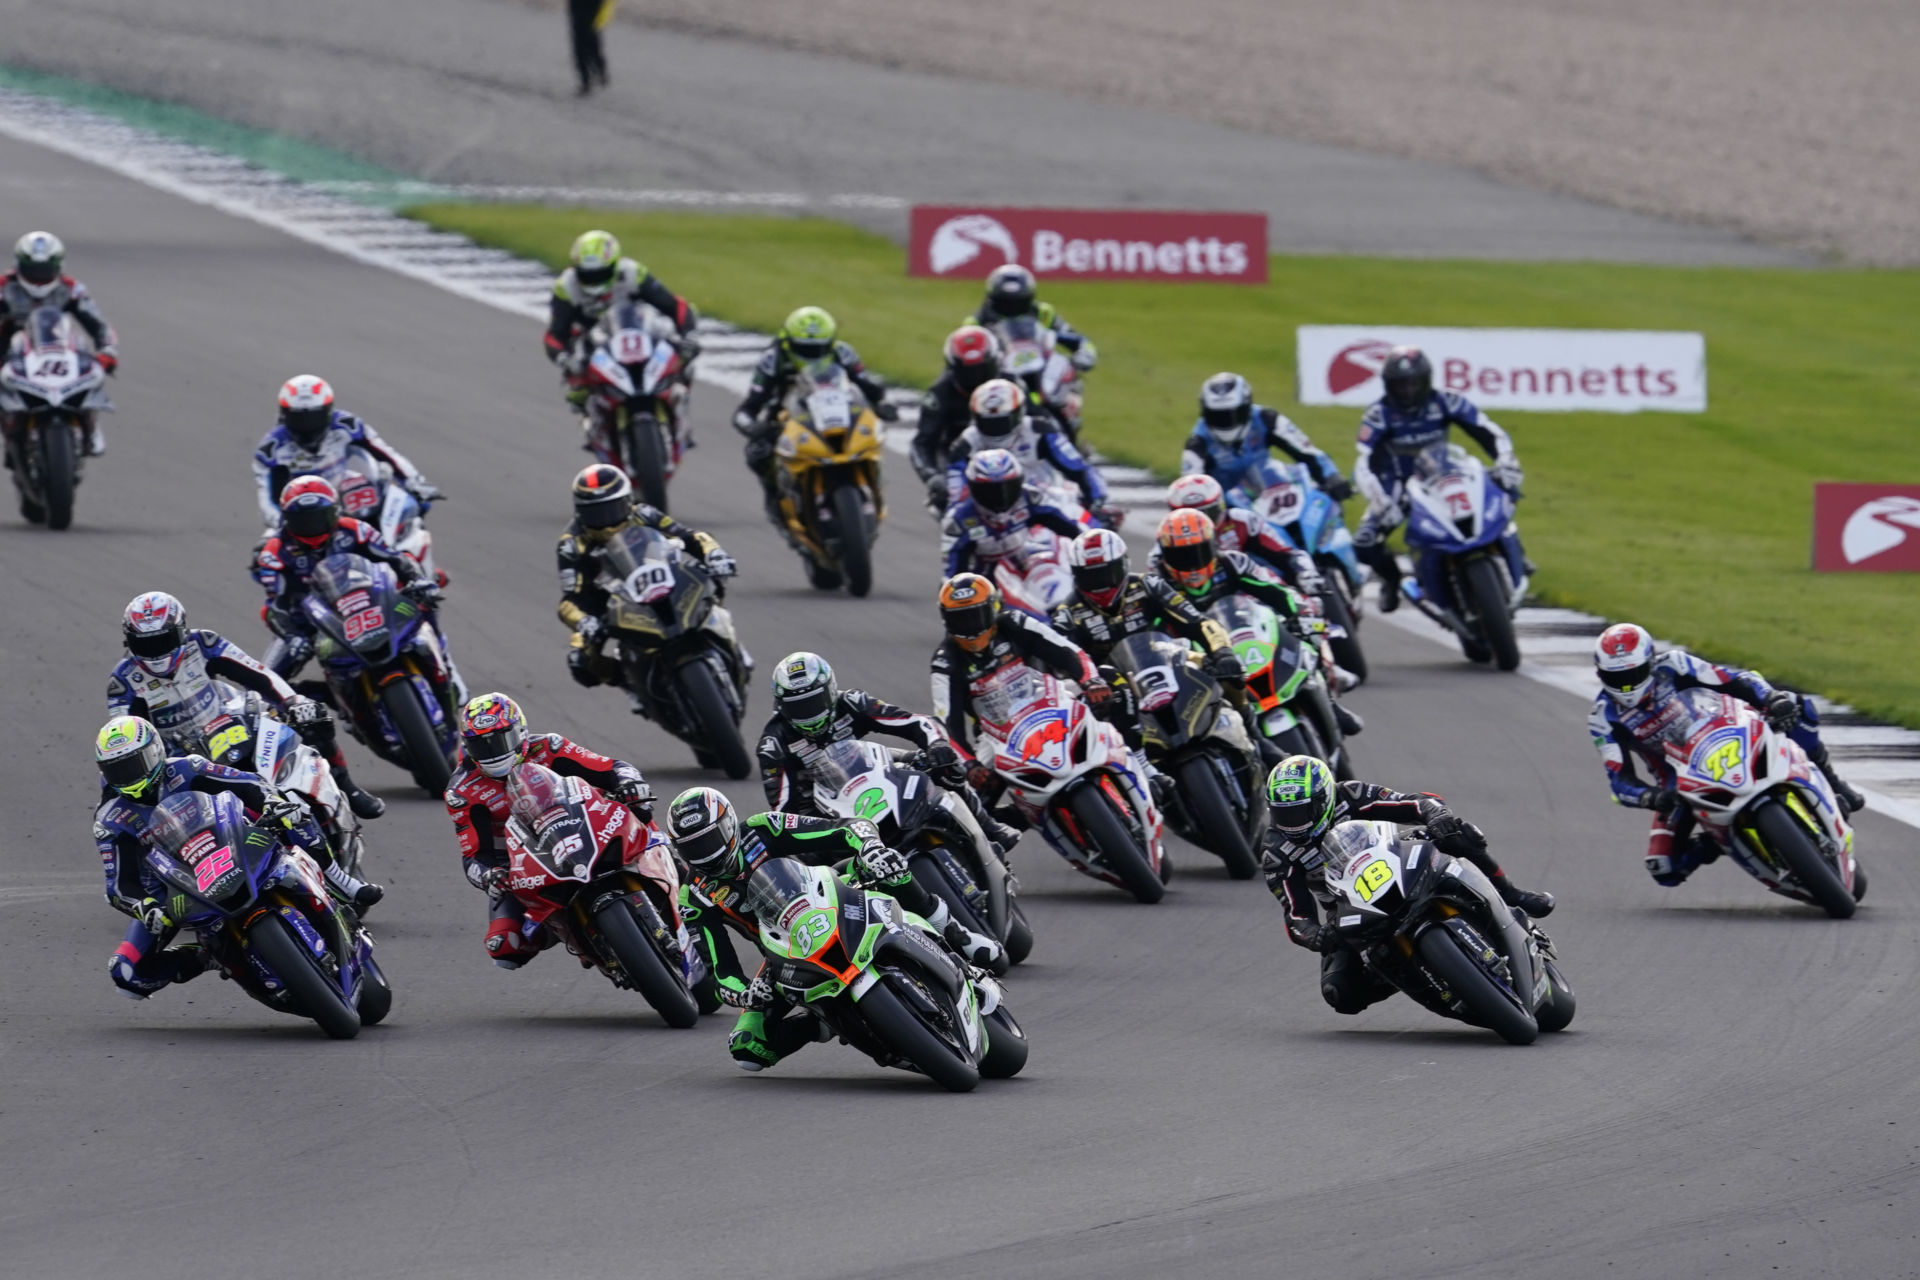 The start of Race One at Silverstone. Photo courtesy MSVR.